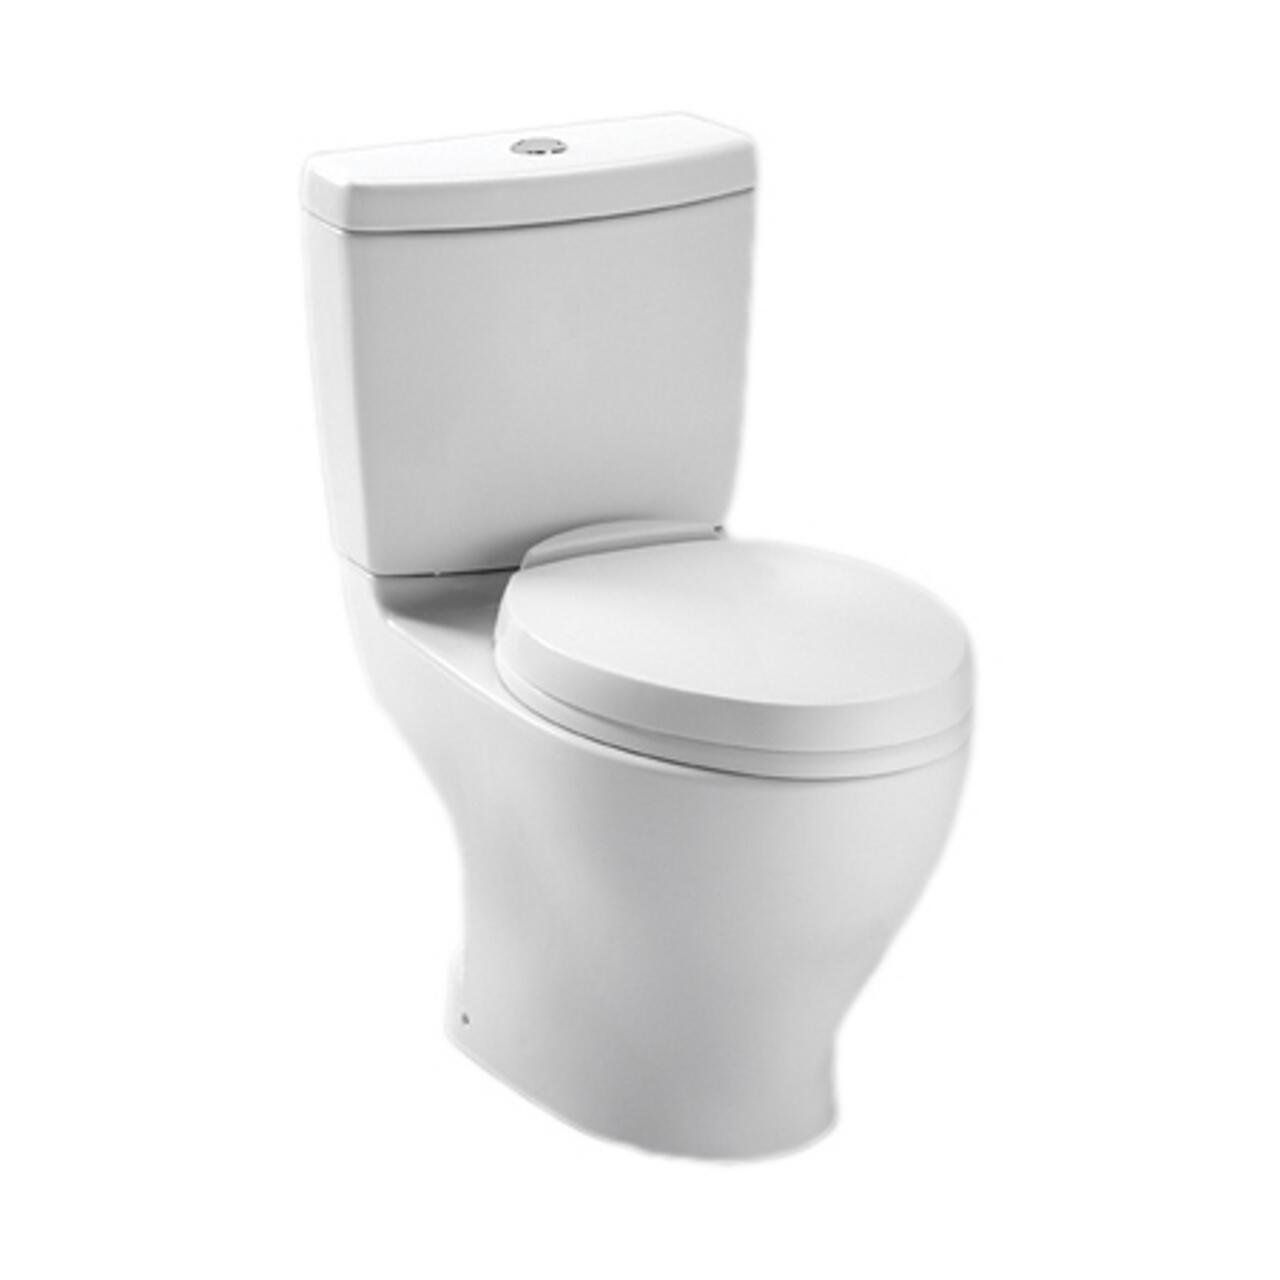 TOTO CST412MF#01 Aquia Dual Flush Elongated Two-Piece Toilet, 1.6GPF ...